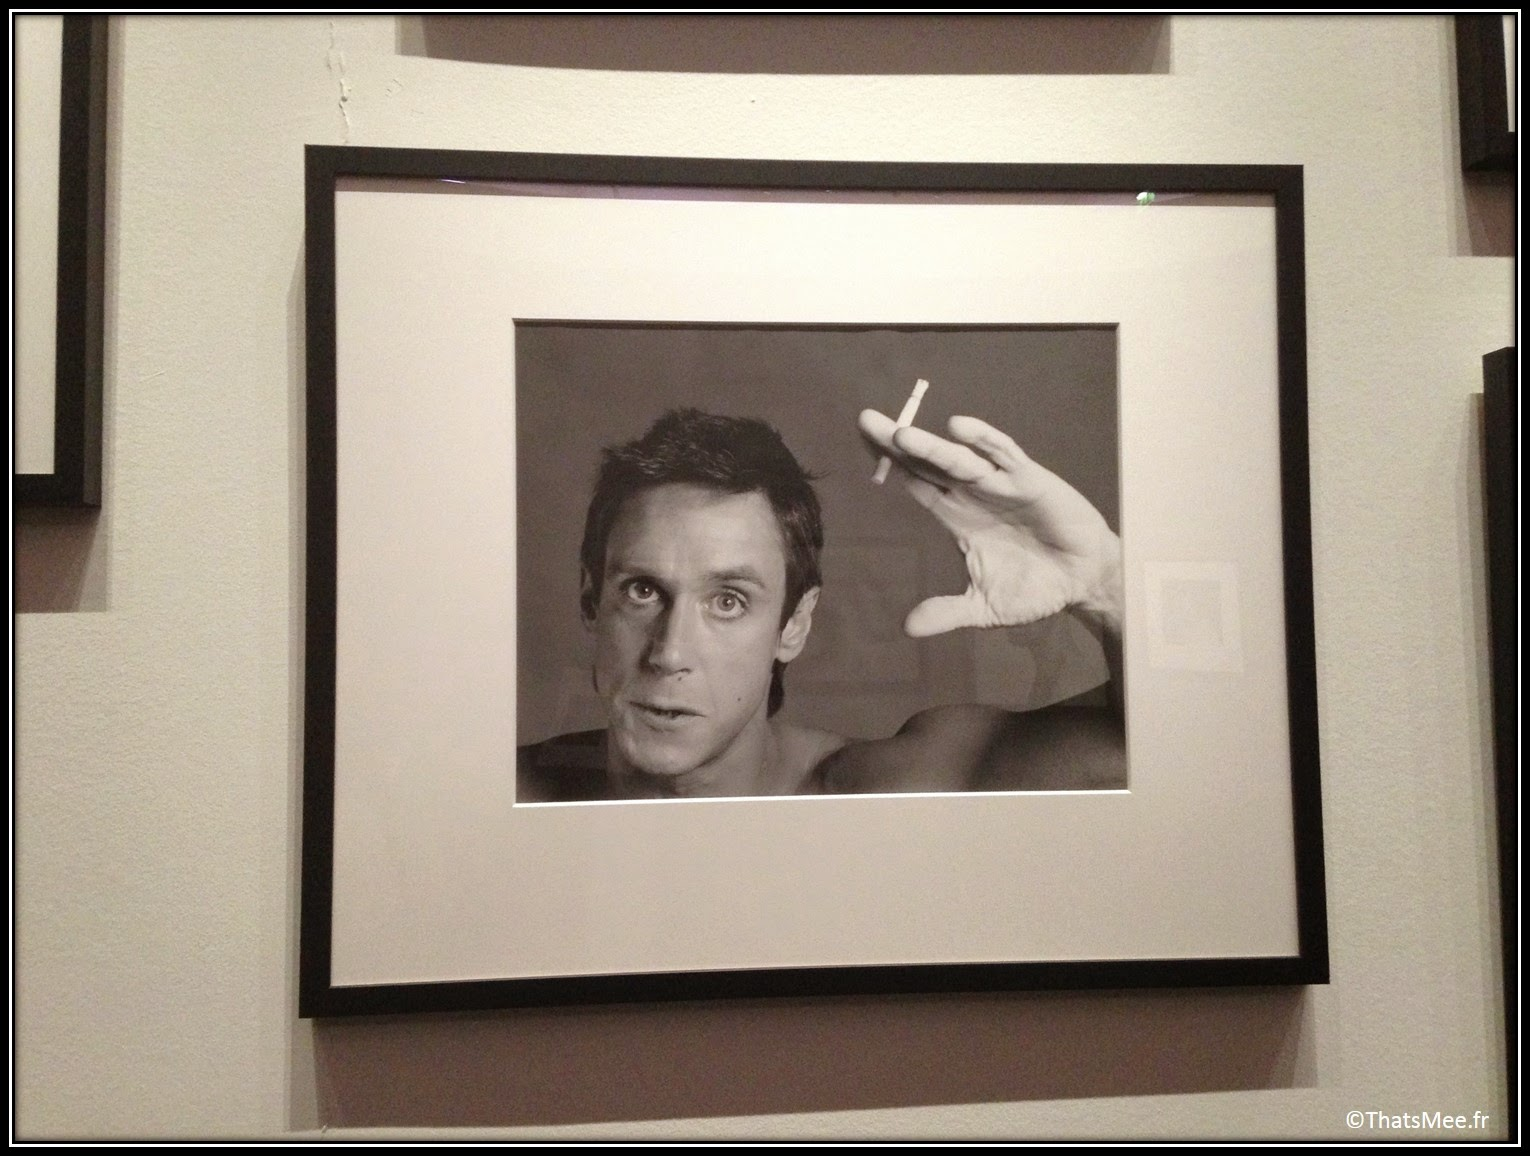 expo photographie Robert Mapplethorpe photographe américain 70s portrait Iggy Pop, expo Mapplethorpe Grand Palais Paris 2014